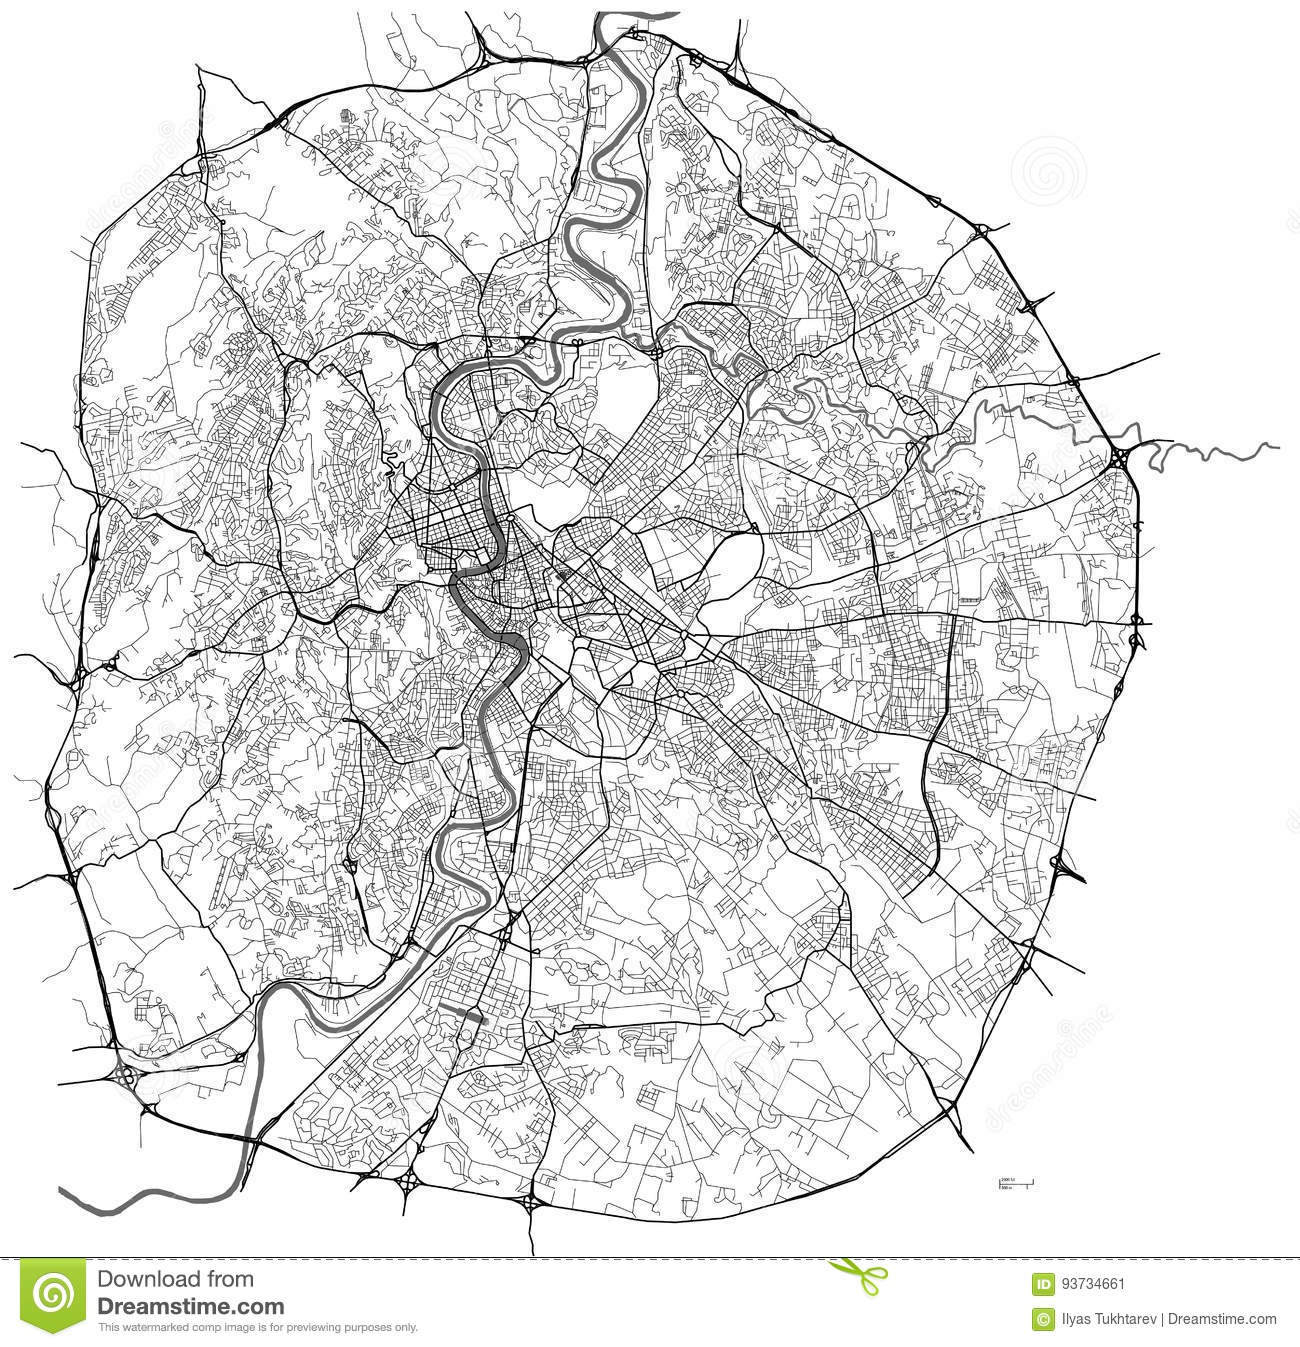 Rome On Map Of Italy.Map Of The City Of Rome Italy Stock Illustration Illustration Of